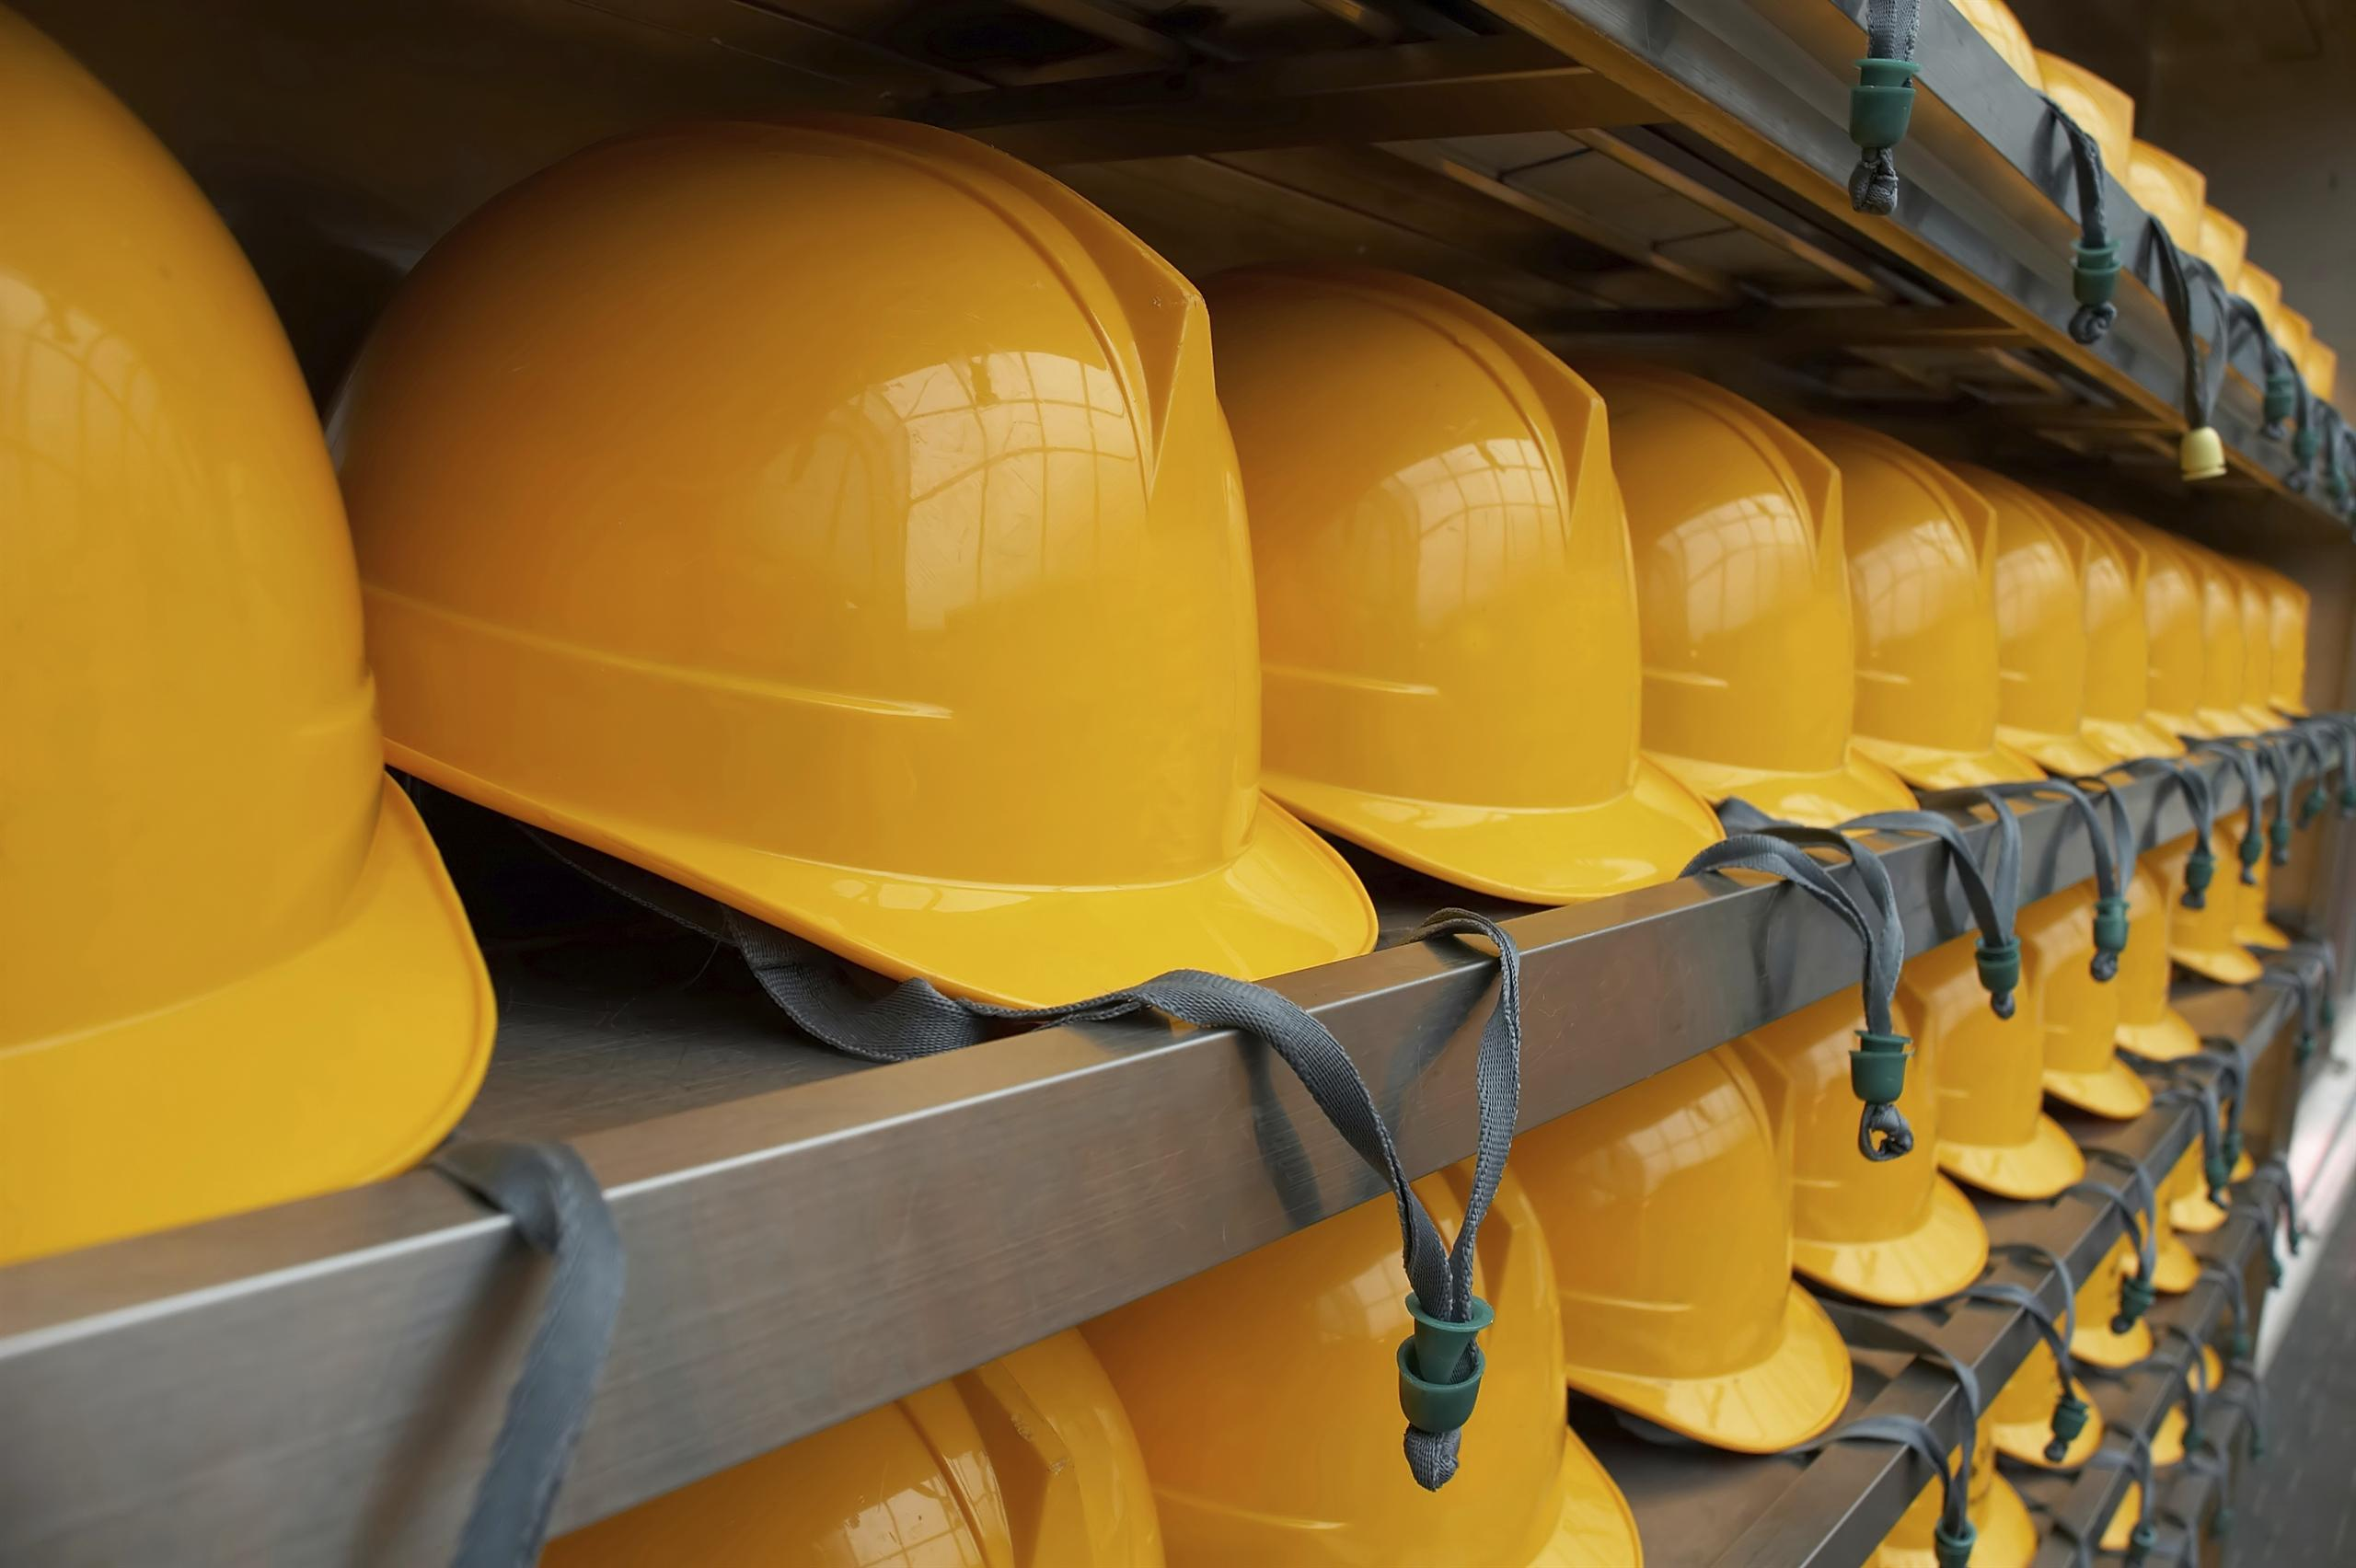 image showing rows of hard hats on shelves